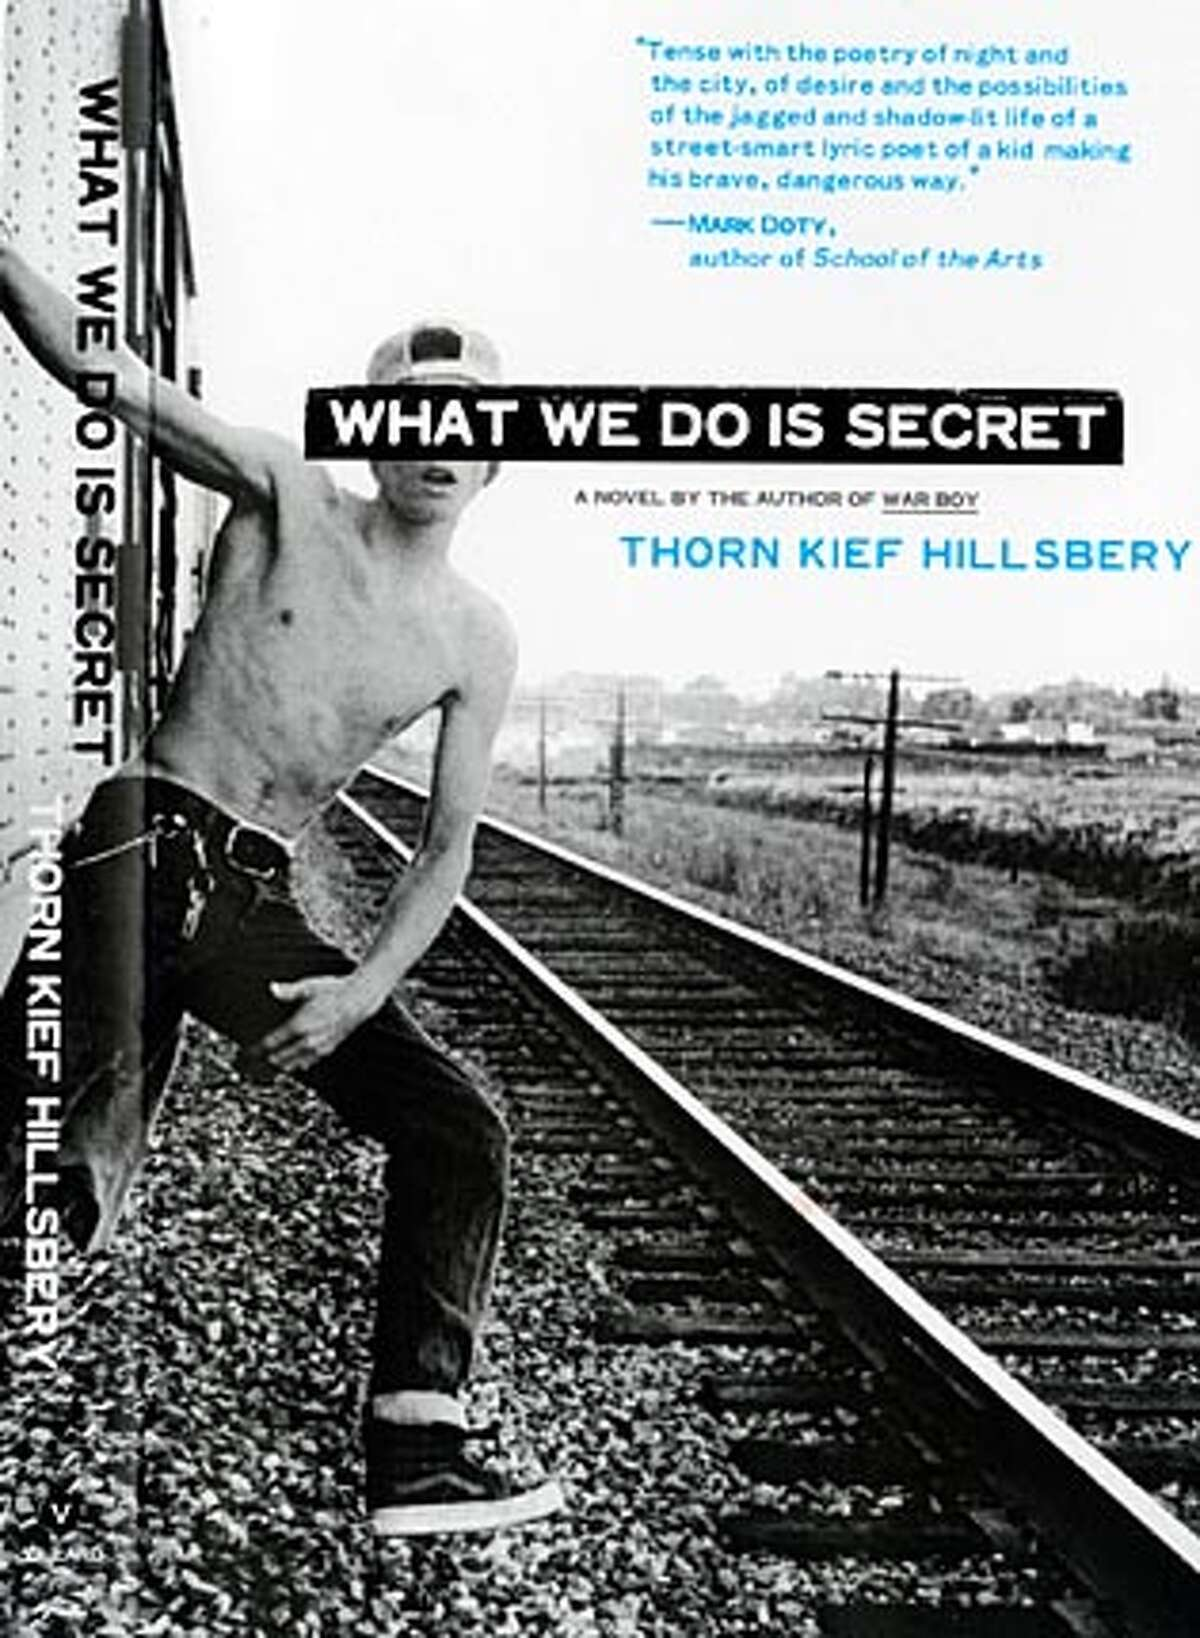 """Cover art from """"What We Do is Secret,"""" a novel by Thorn Kief Hillsbery. BookReview#BookReview#Chronicle#05-01-2005#ALL#2star#c2#0422845554"""